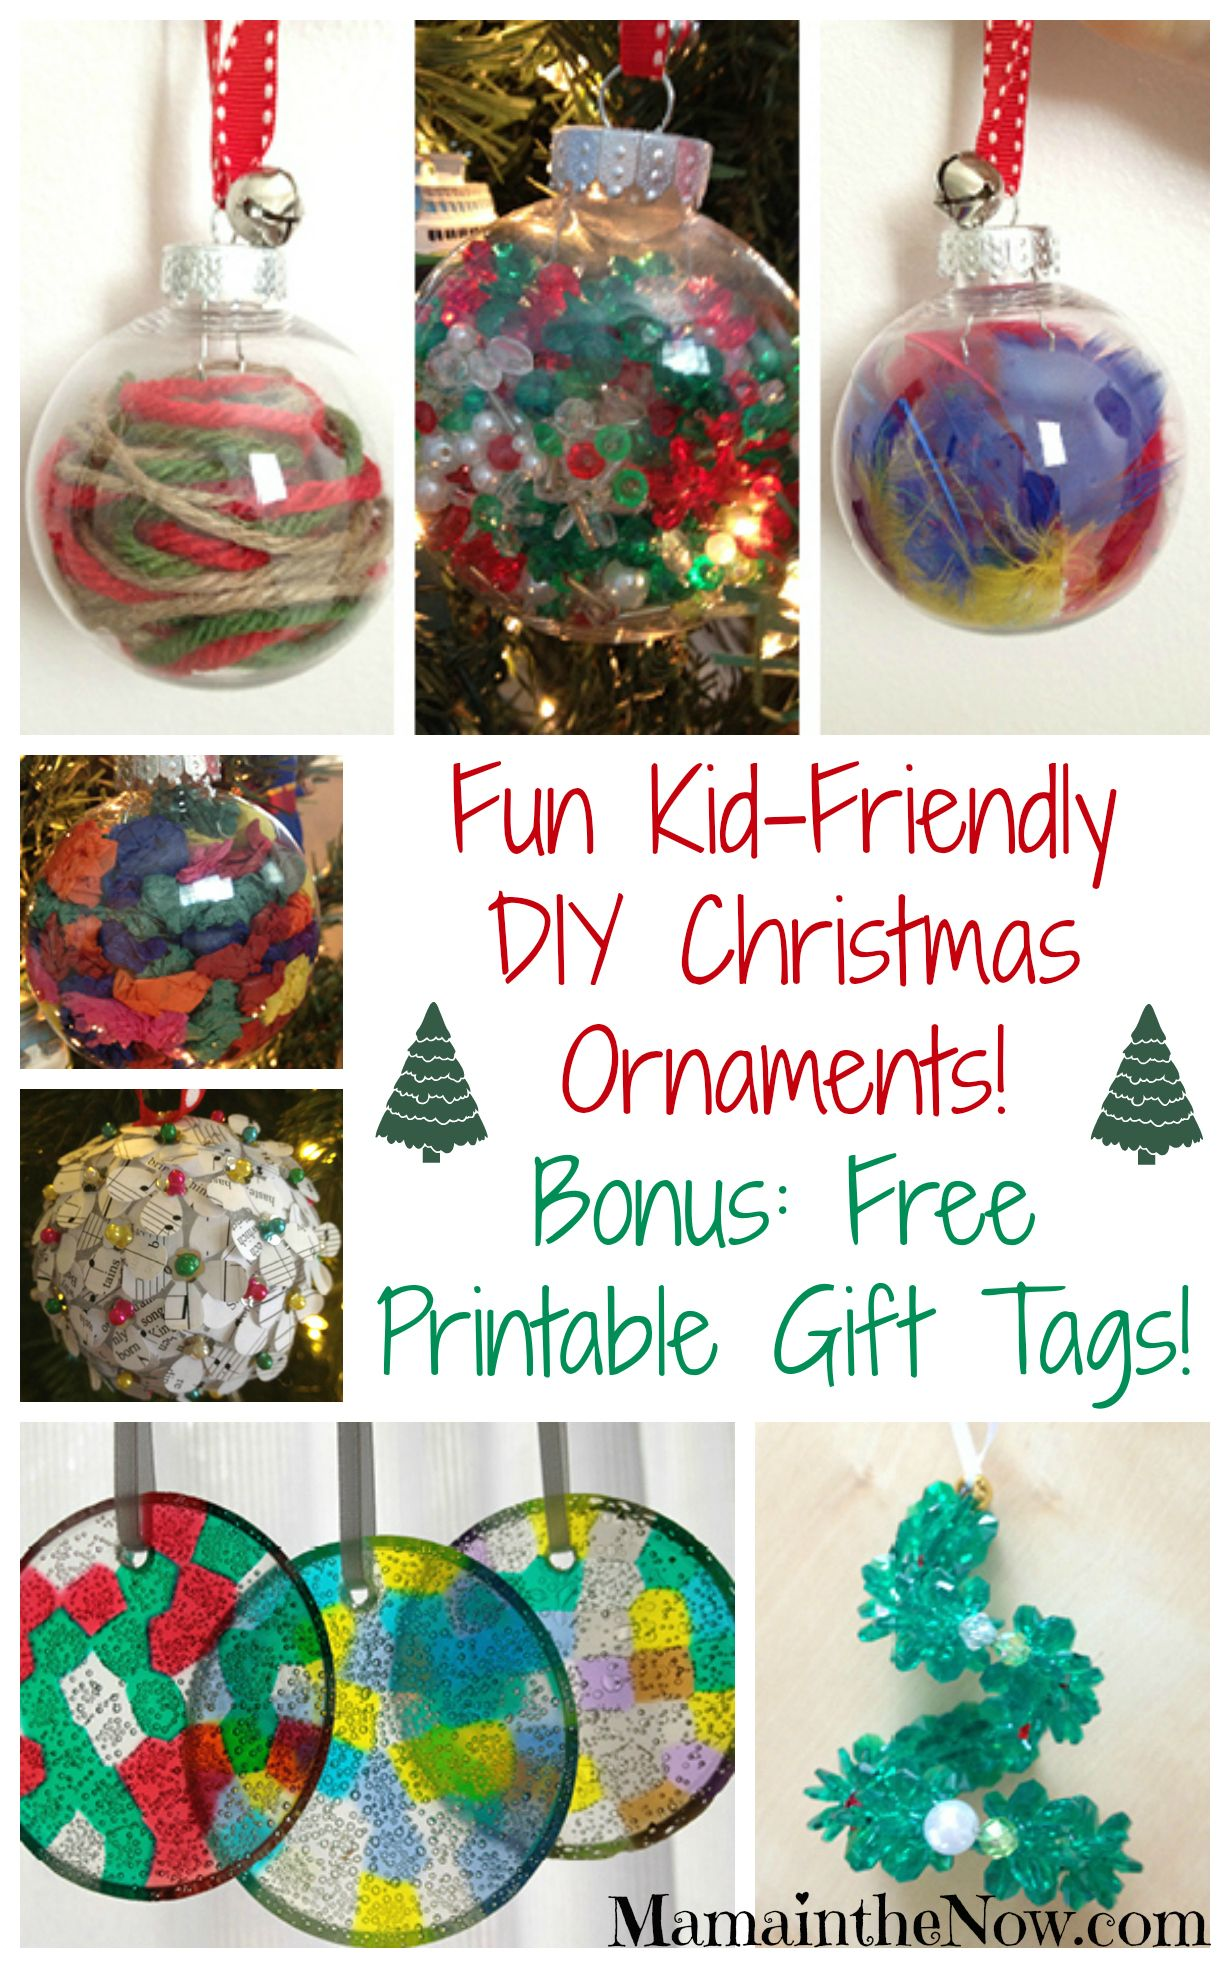 Easy Kid,Friendly DIY Christmas Ornaments!